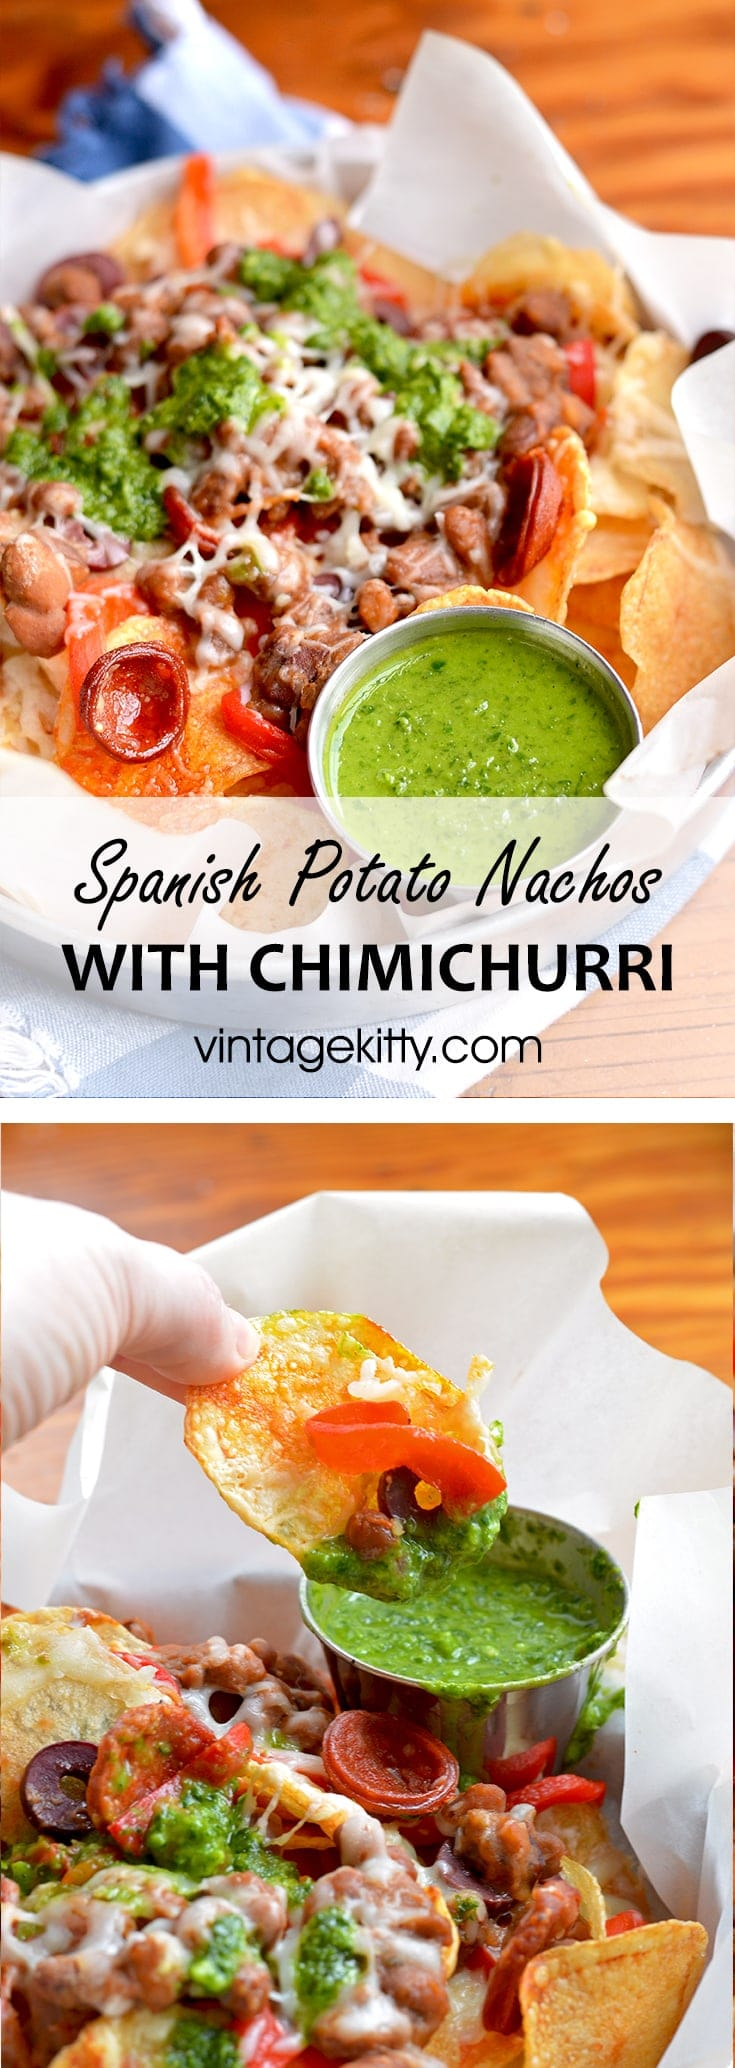 Homemade potato chips get loaded with savory ingredients in this Spanish Potato Nachos recipe. Far from ordinary, these nachos are topped with Manchego cheese, Chorizo sausage and served with a fresh, zesty Chimichurri.